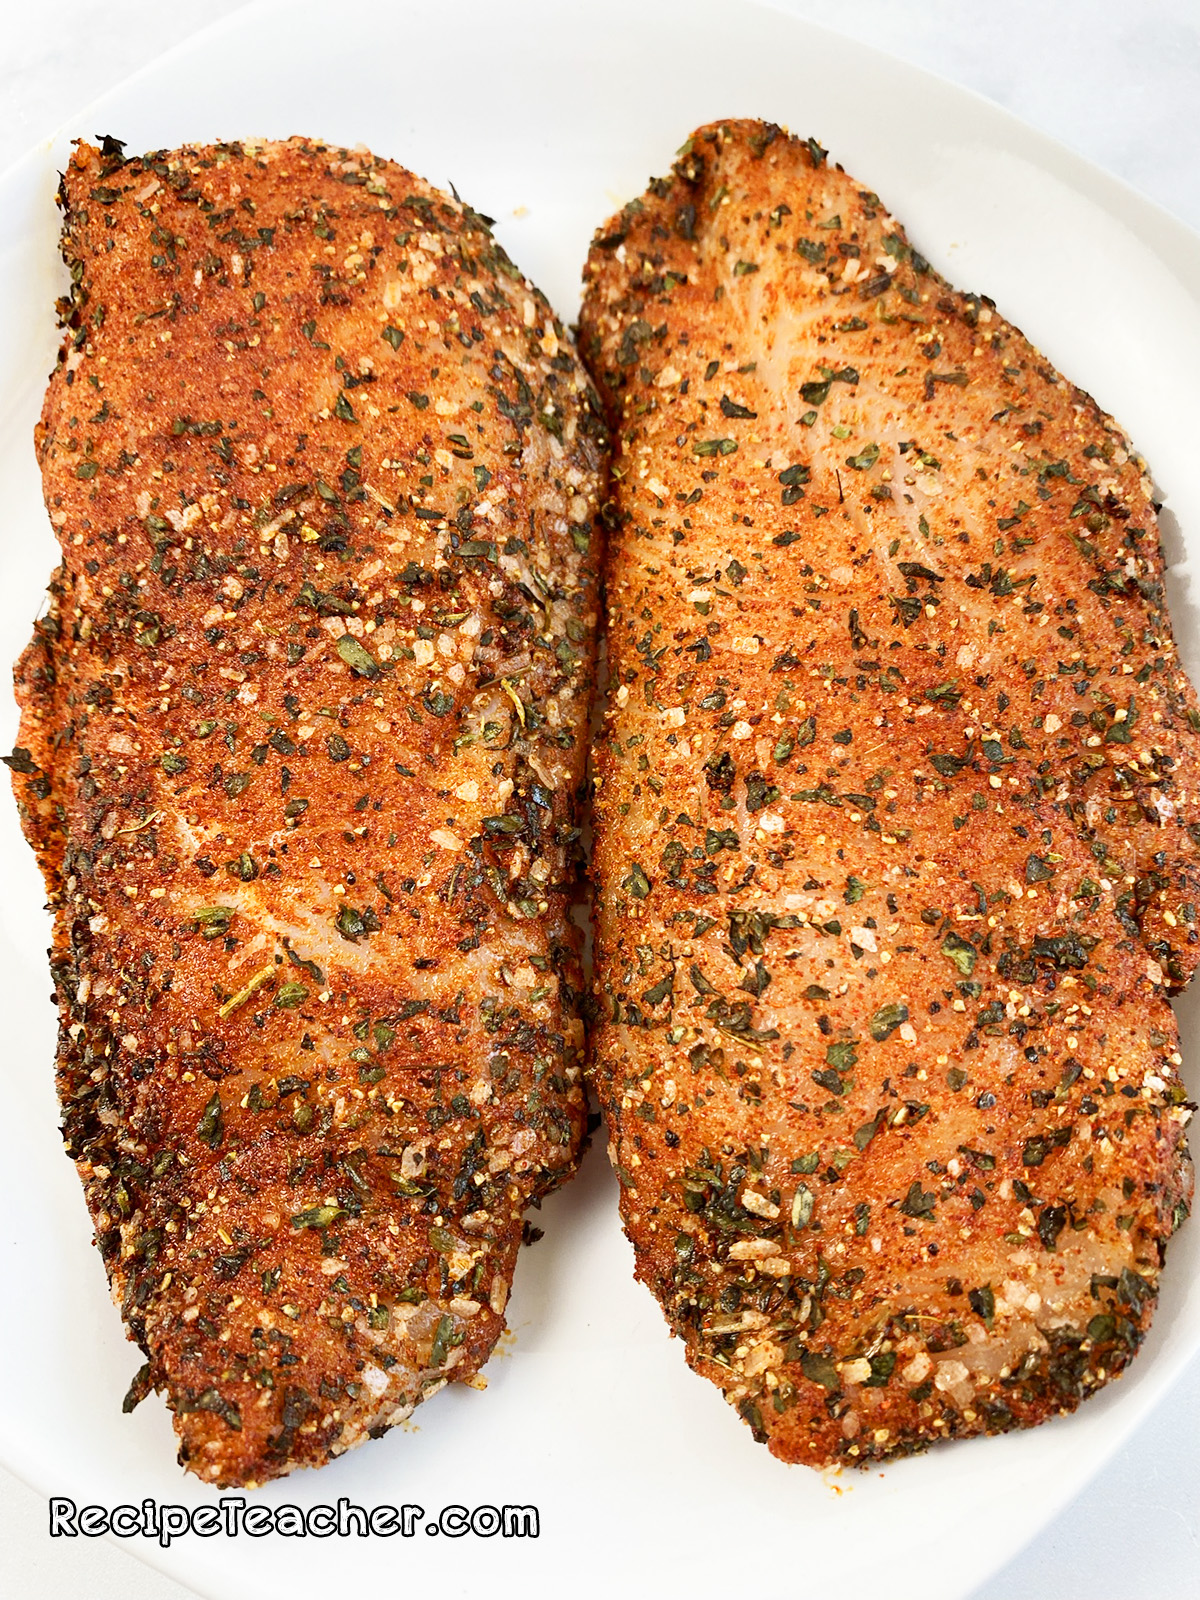 Seasoned chicken breasts ready to be cooked in a George Foreman Grill.